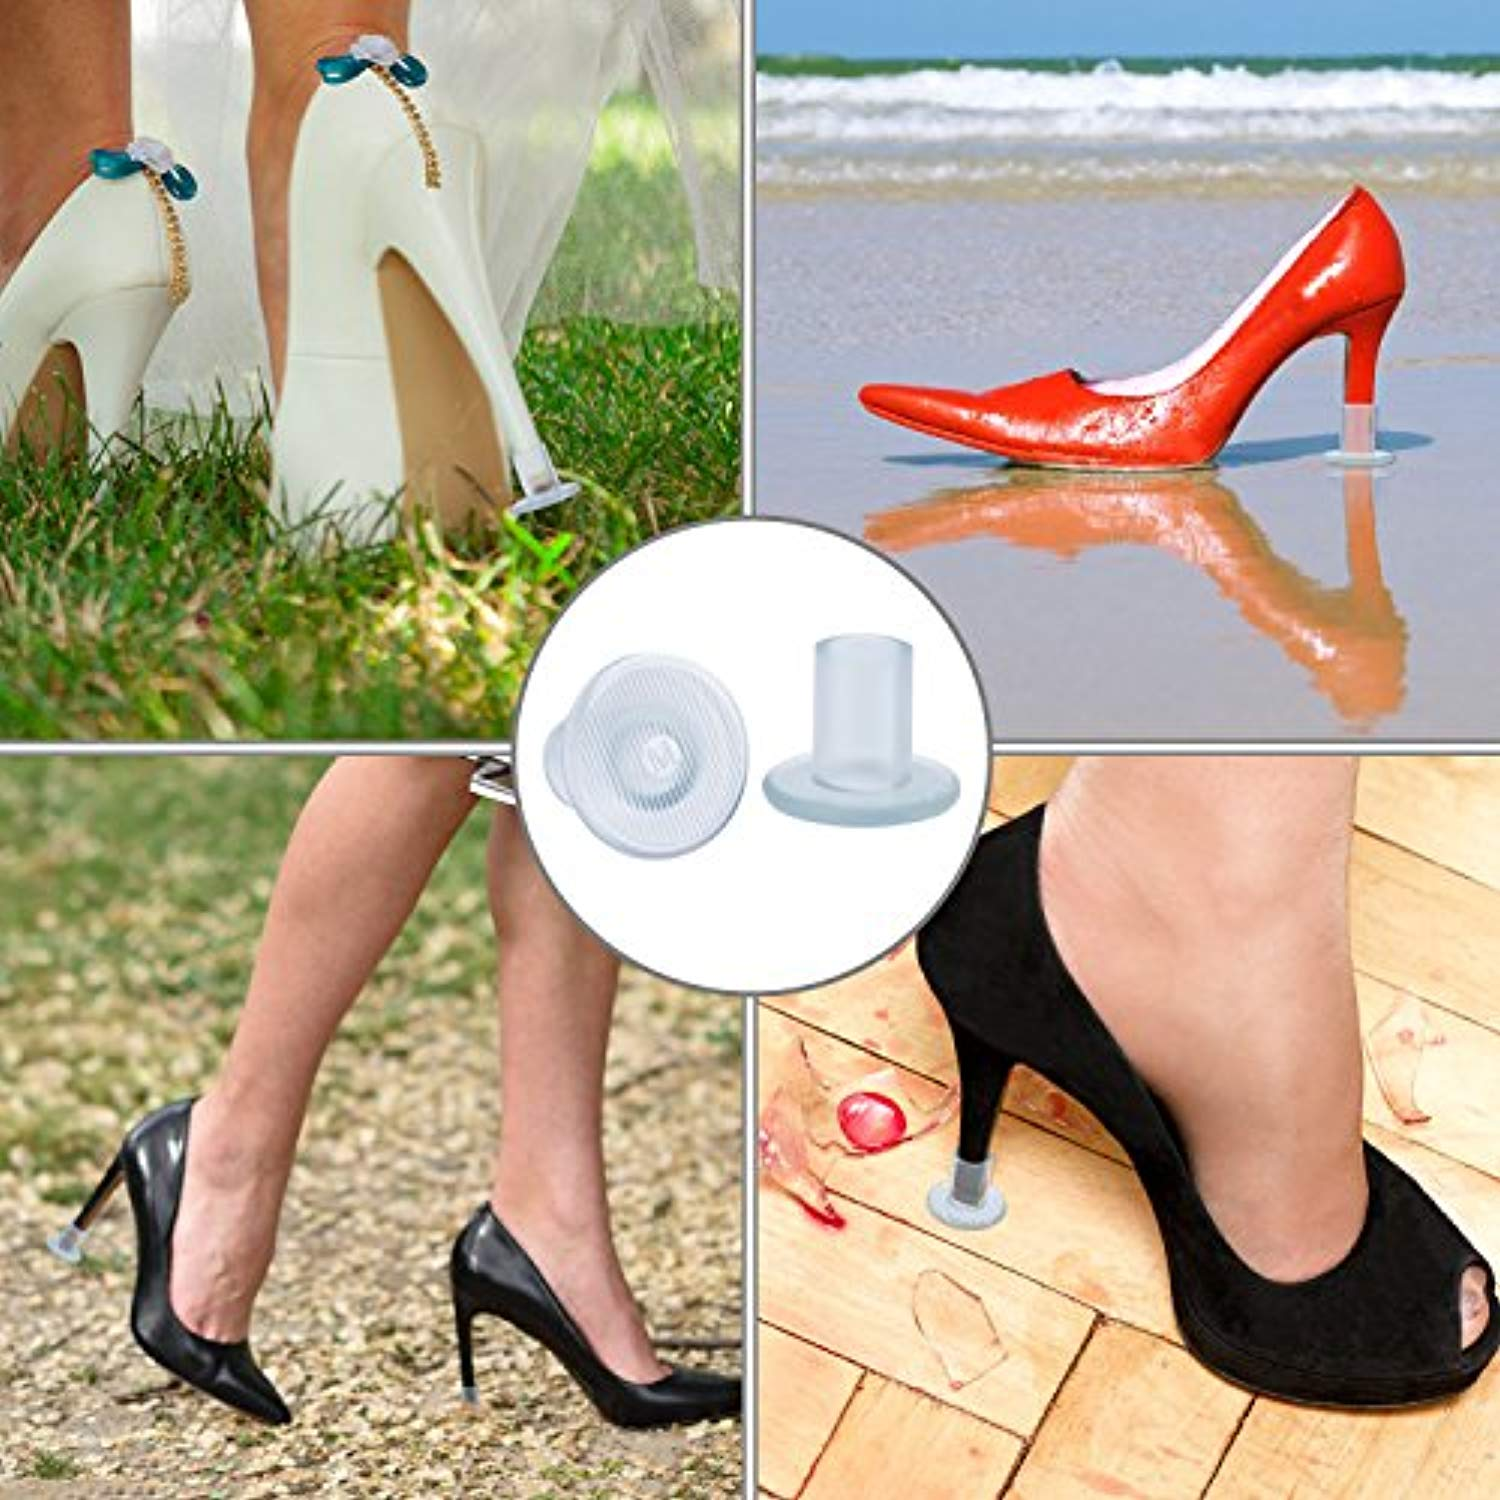 Leihou61 12 Pairs Heel Stoppers High Heel Protectors for Women's Shoes